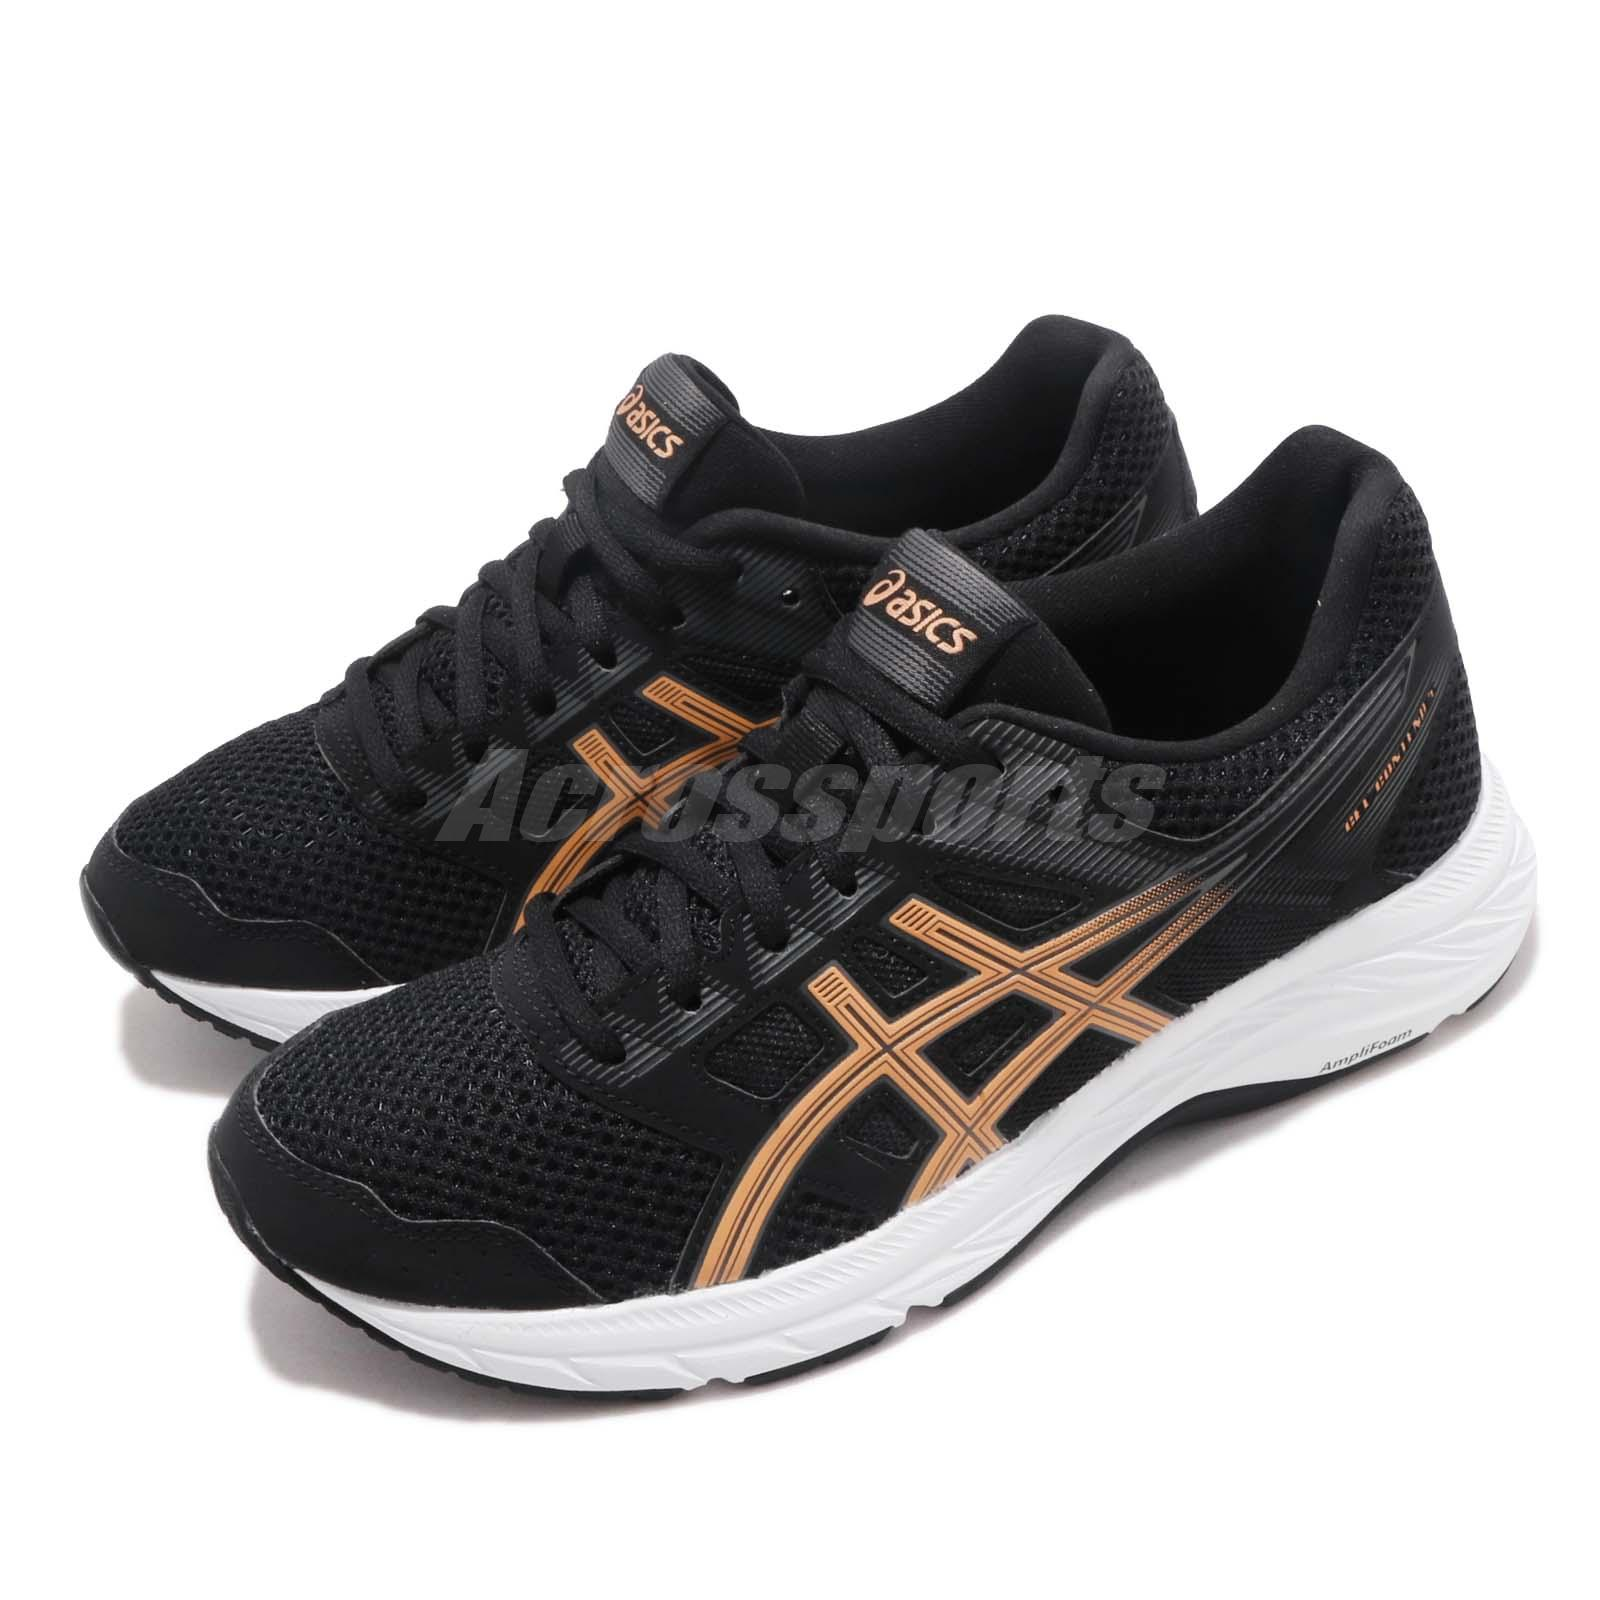 bb5ddc708fc82 Details about Asics Gel-Contend 5 Black Summer Dune Women Running Shoes  Sneakers 1012A234-001